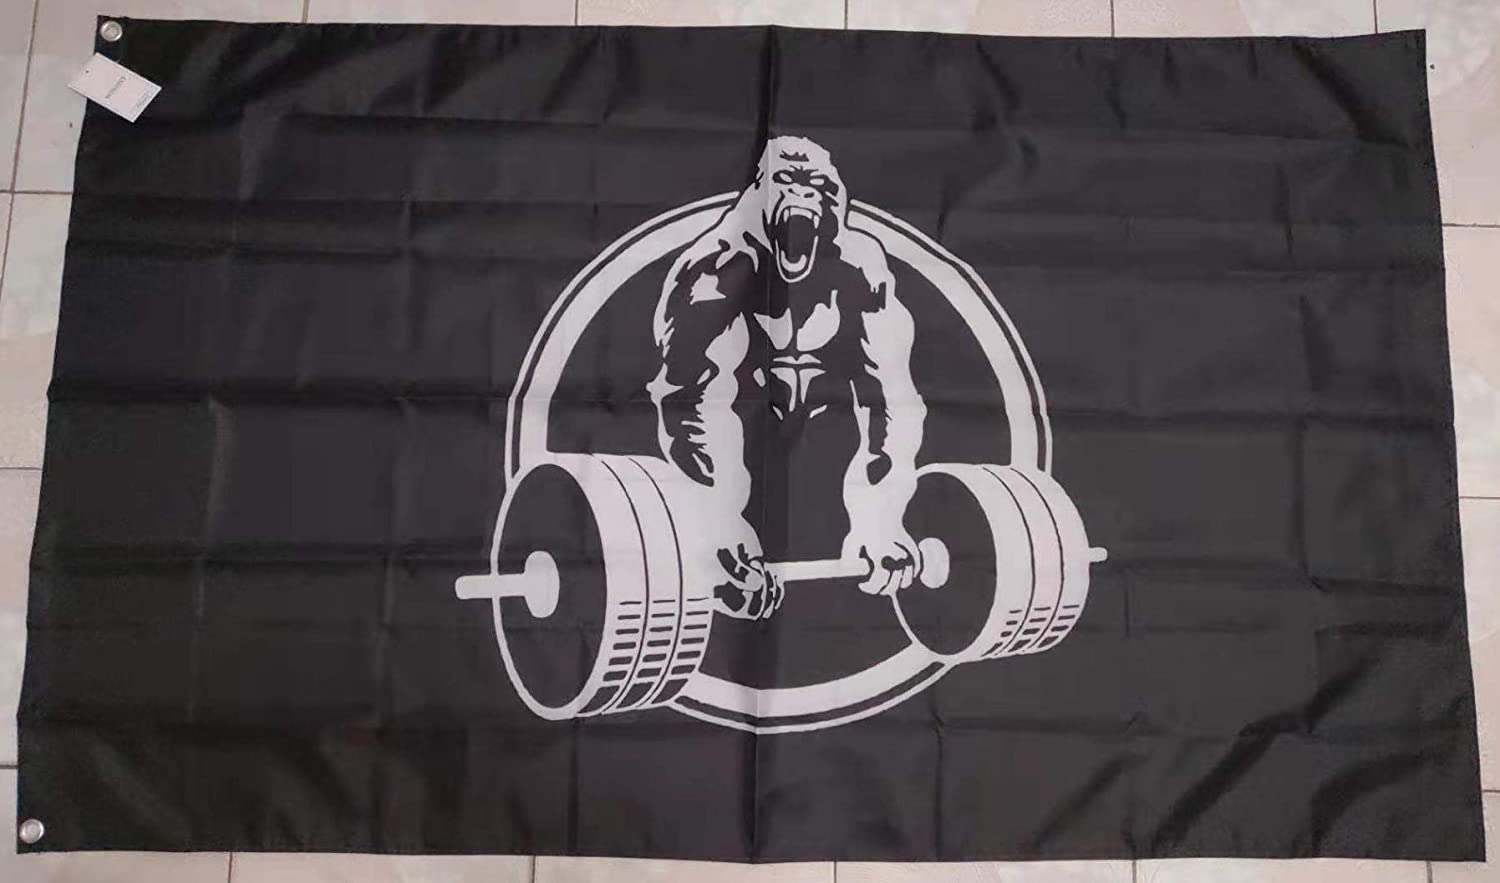 Personalized Gorilla Lifting Logo Garden Flag has the graphic of a gorilla that is lifting weights but offers an option to personlize